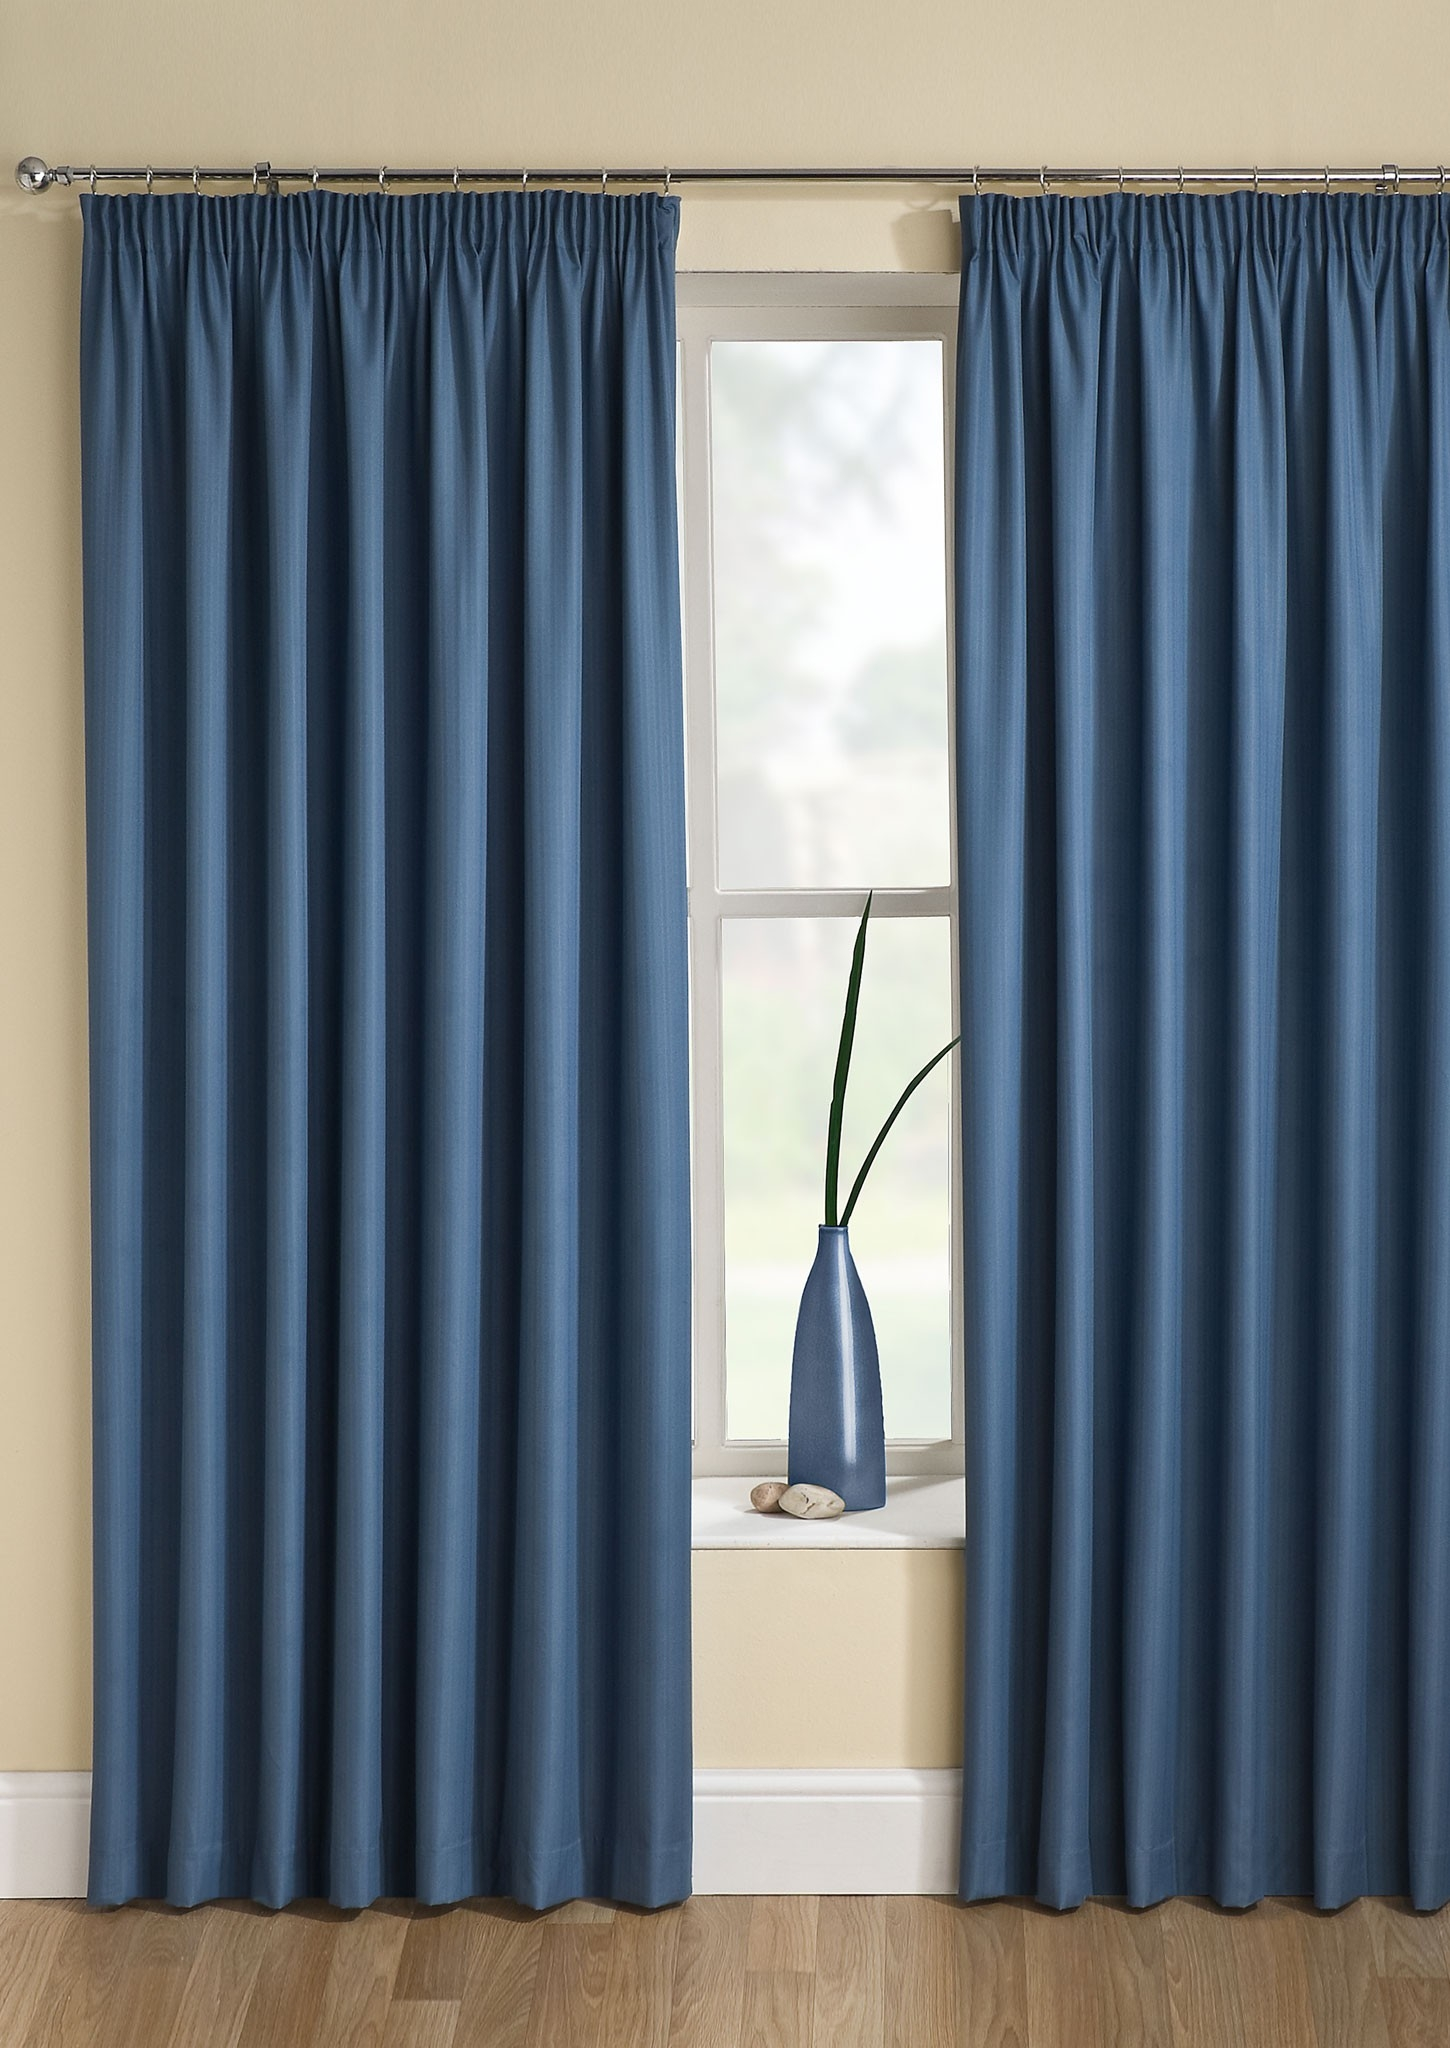 Tranquility Wedgewood Thermal Jacquard Pencil Pleat Curtains Throughout Pencil Pleat Curtains (View 9 of 15)